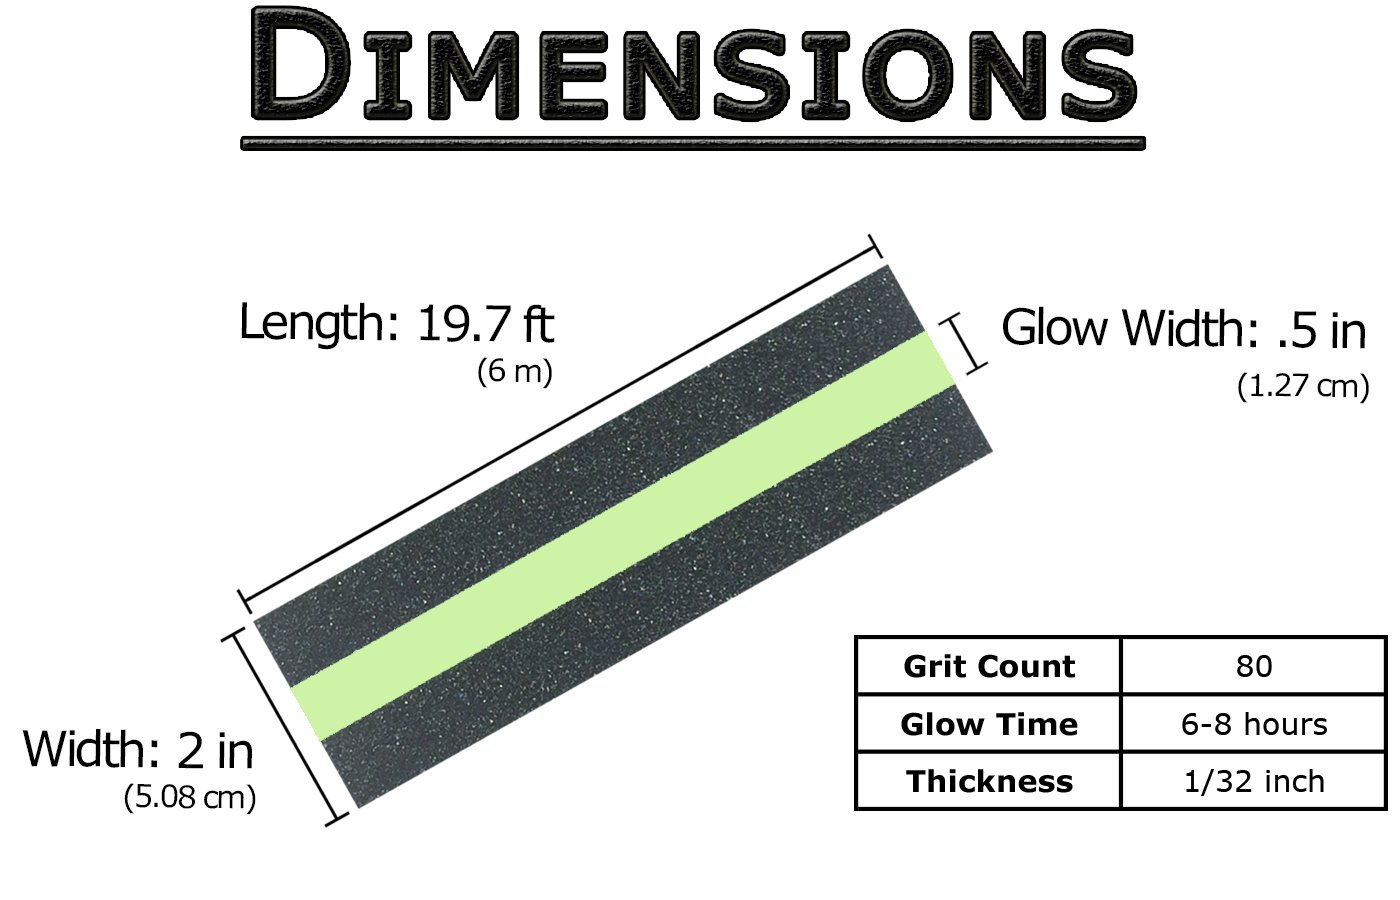 Anti Slip Tape with Glow in The Dark Safety Strip - 1 Roll 19.7 ft x 2 in, 80 Grit Non-Slip High Traction Abrasive, Perfect Grip for Stairs & Steps, Indoor & Outdoor Use, Easy Installation by nDream (Image #3)